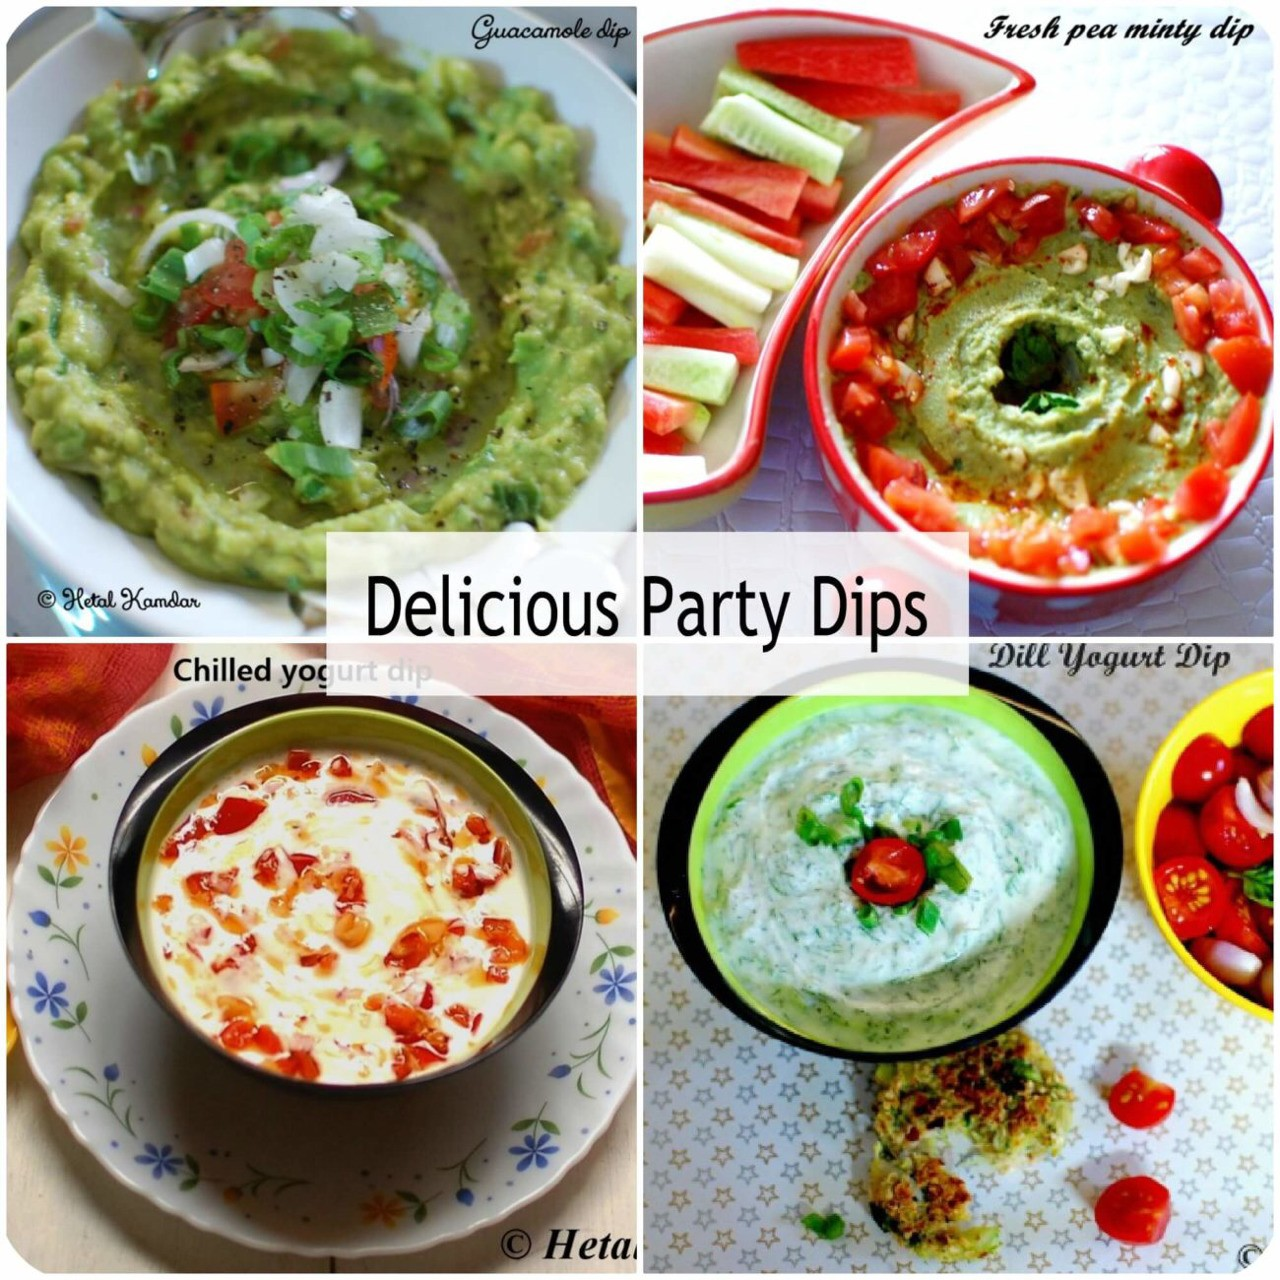 6 Party Dips - quick n easy